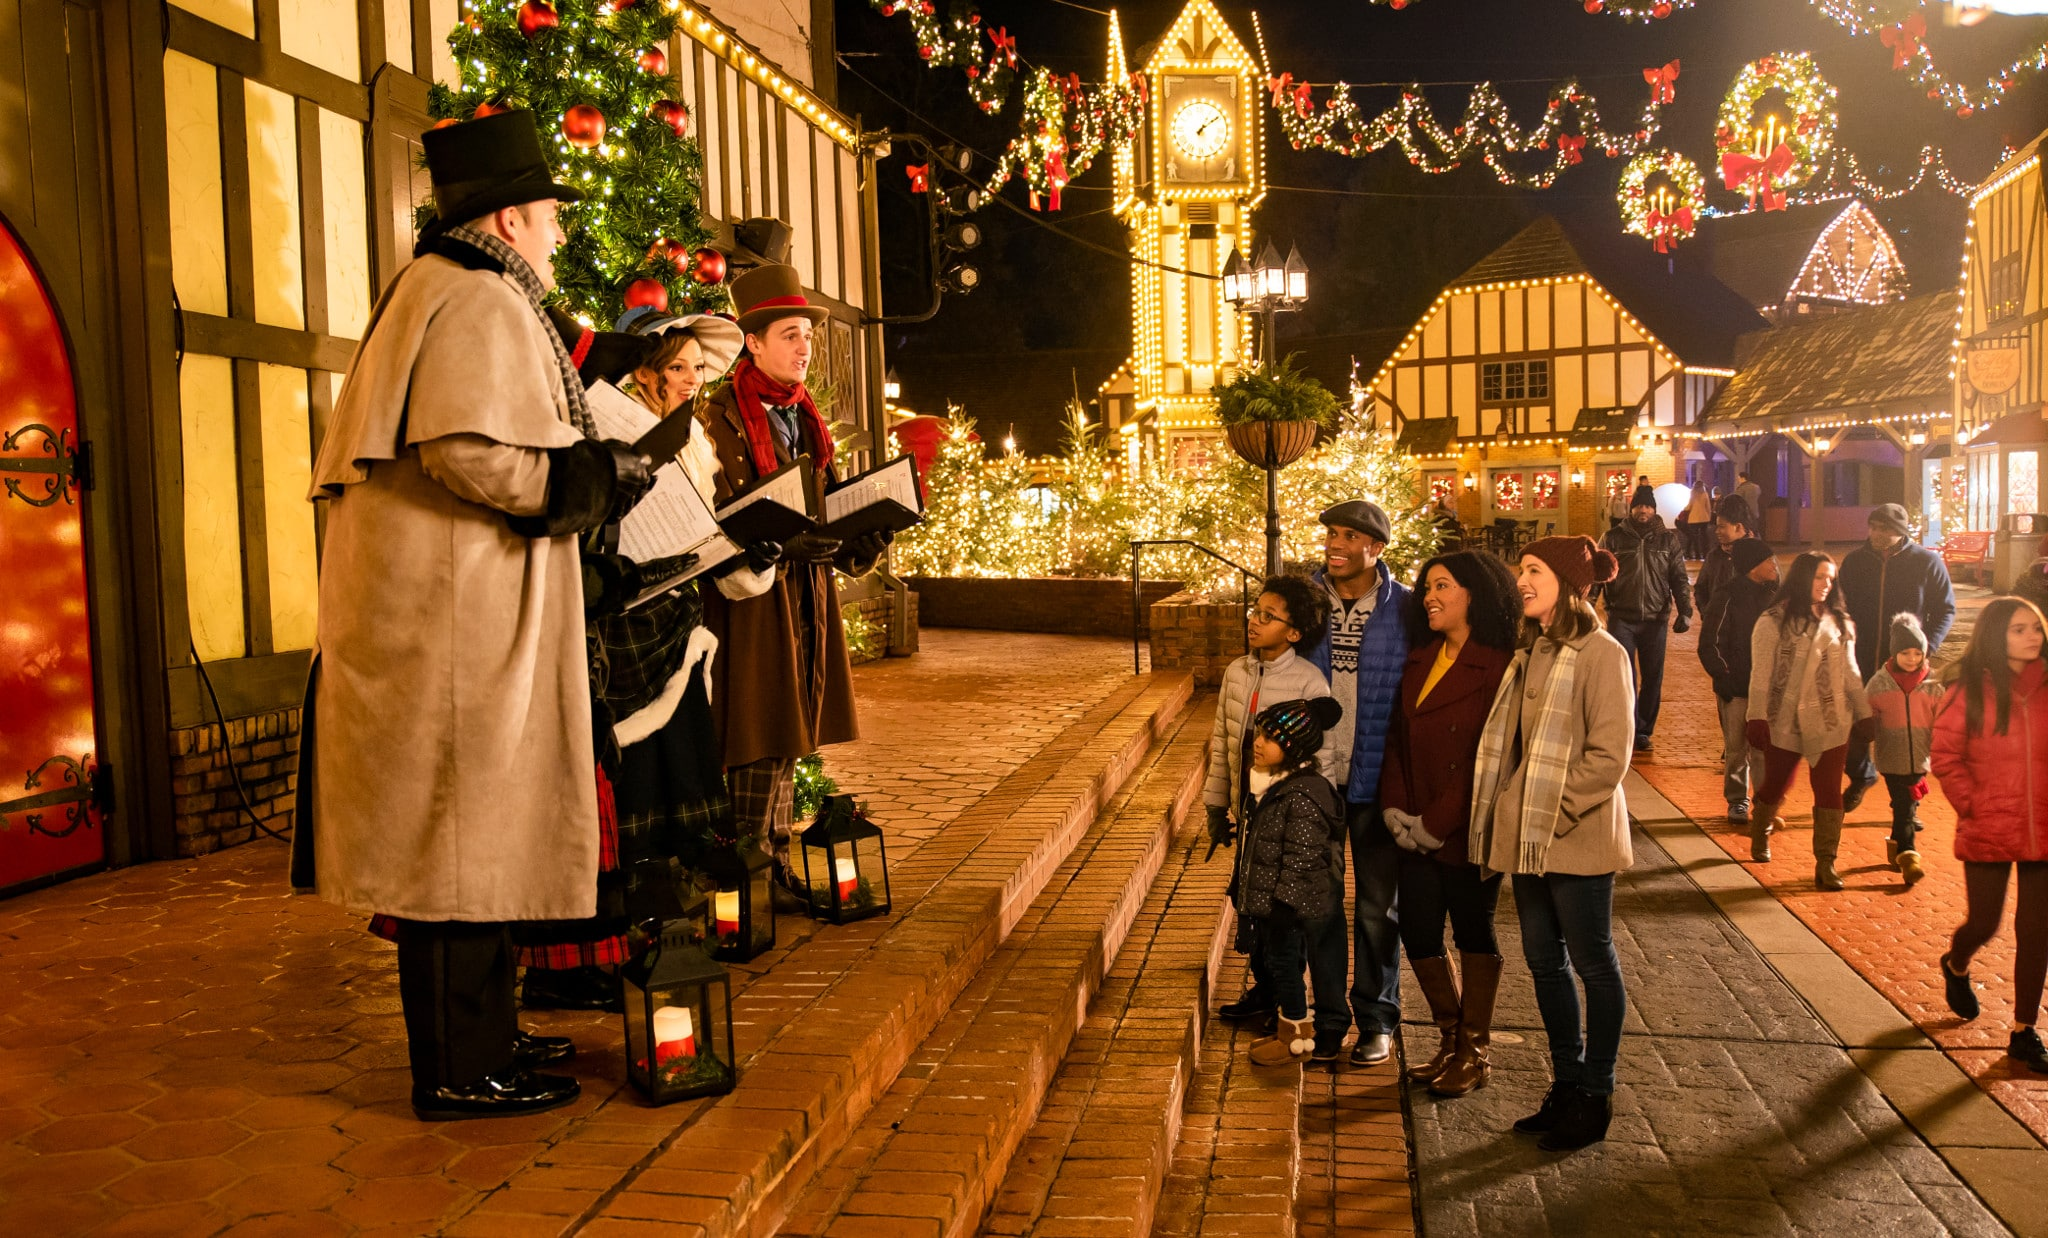 Christmas Town Busch Gardens Williamsburg VA. Enjoy a special special shows and live performances during Busch Gardens Christmas Town Event in Williamsburg VA. Read about all the fun things to expect in this years Christmas Town event.